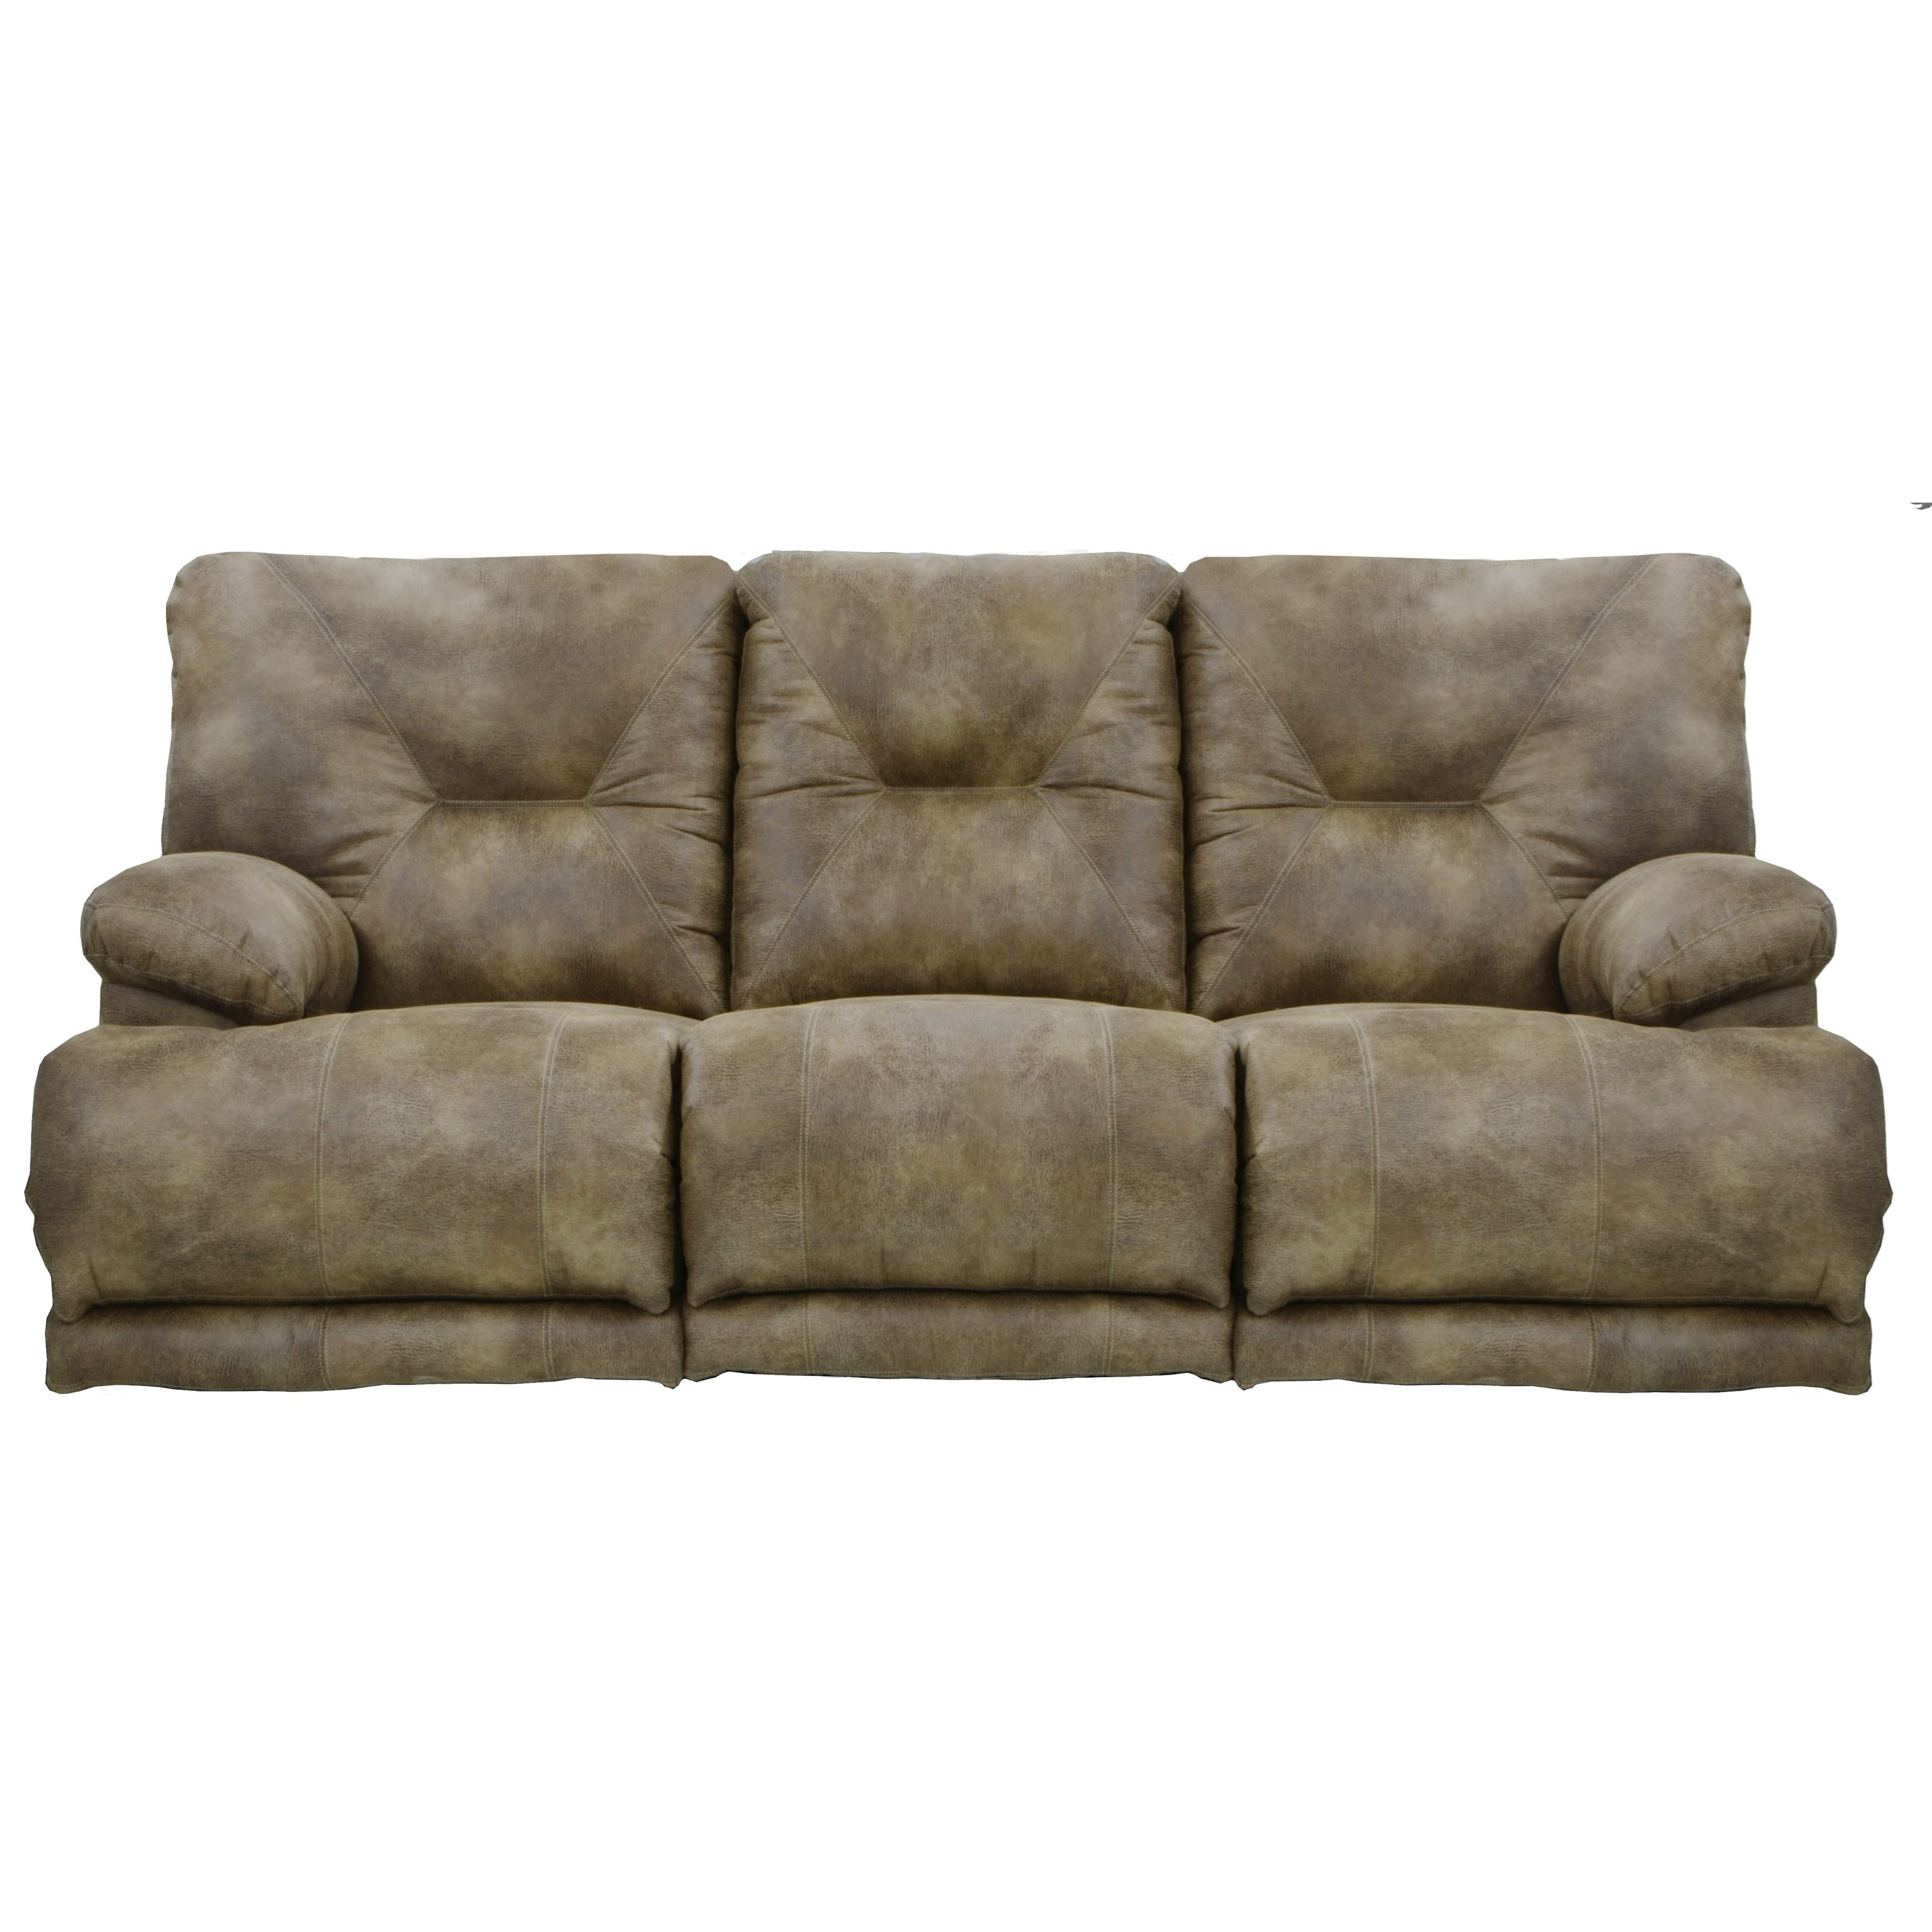 Catnapper Voyager 643845 Power 3 Seat Lay Flat Reclining Sofa With